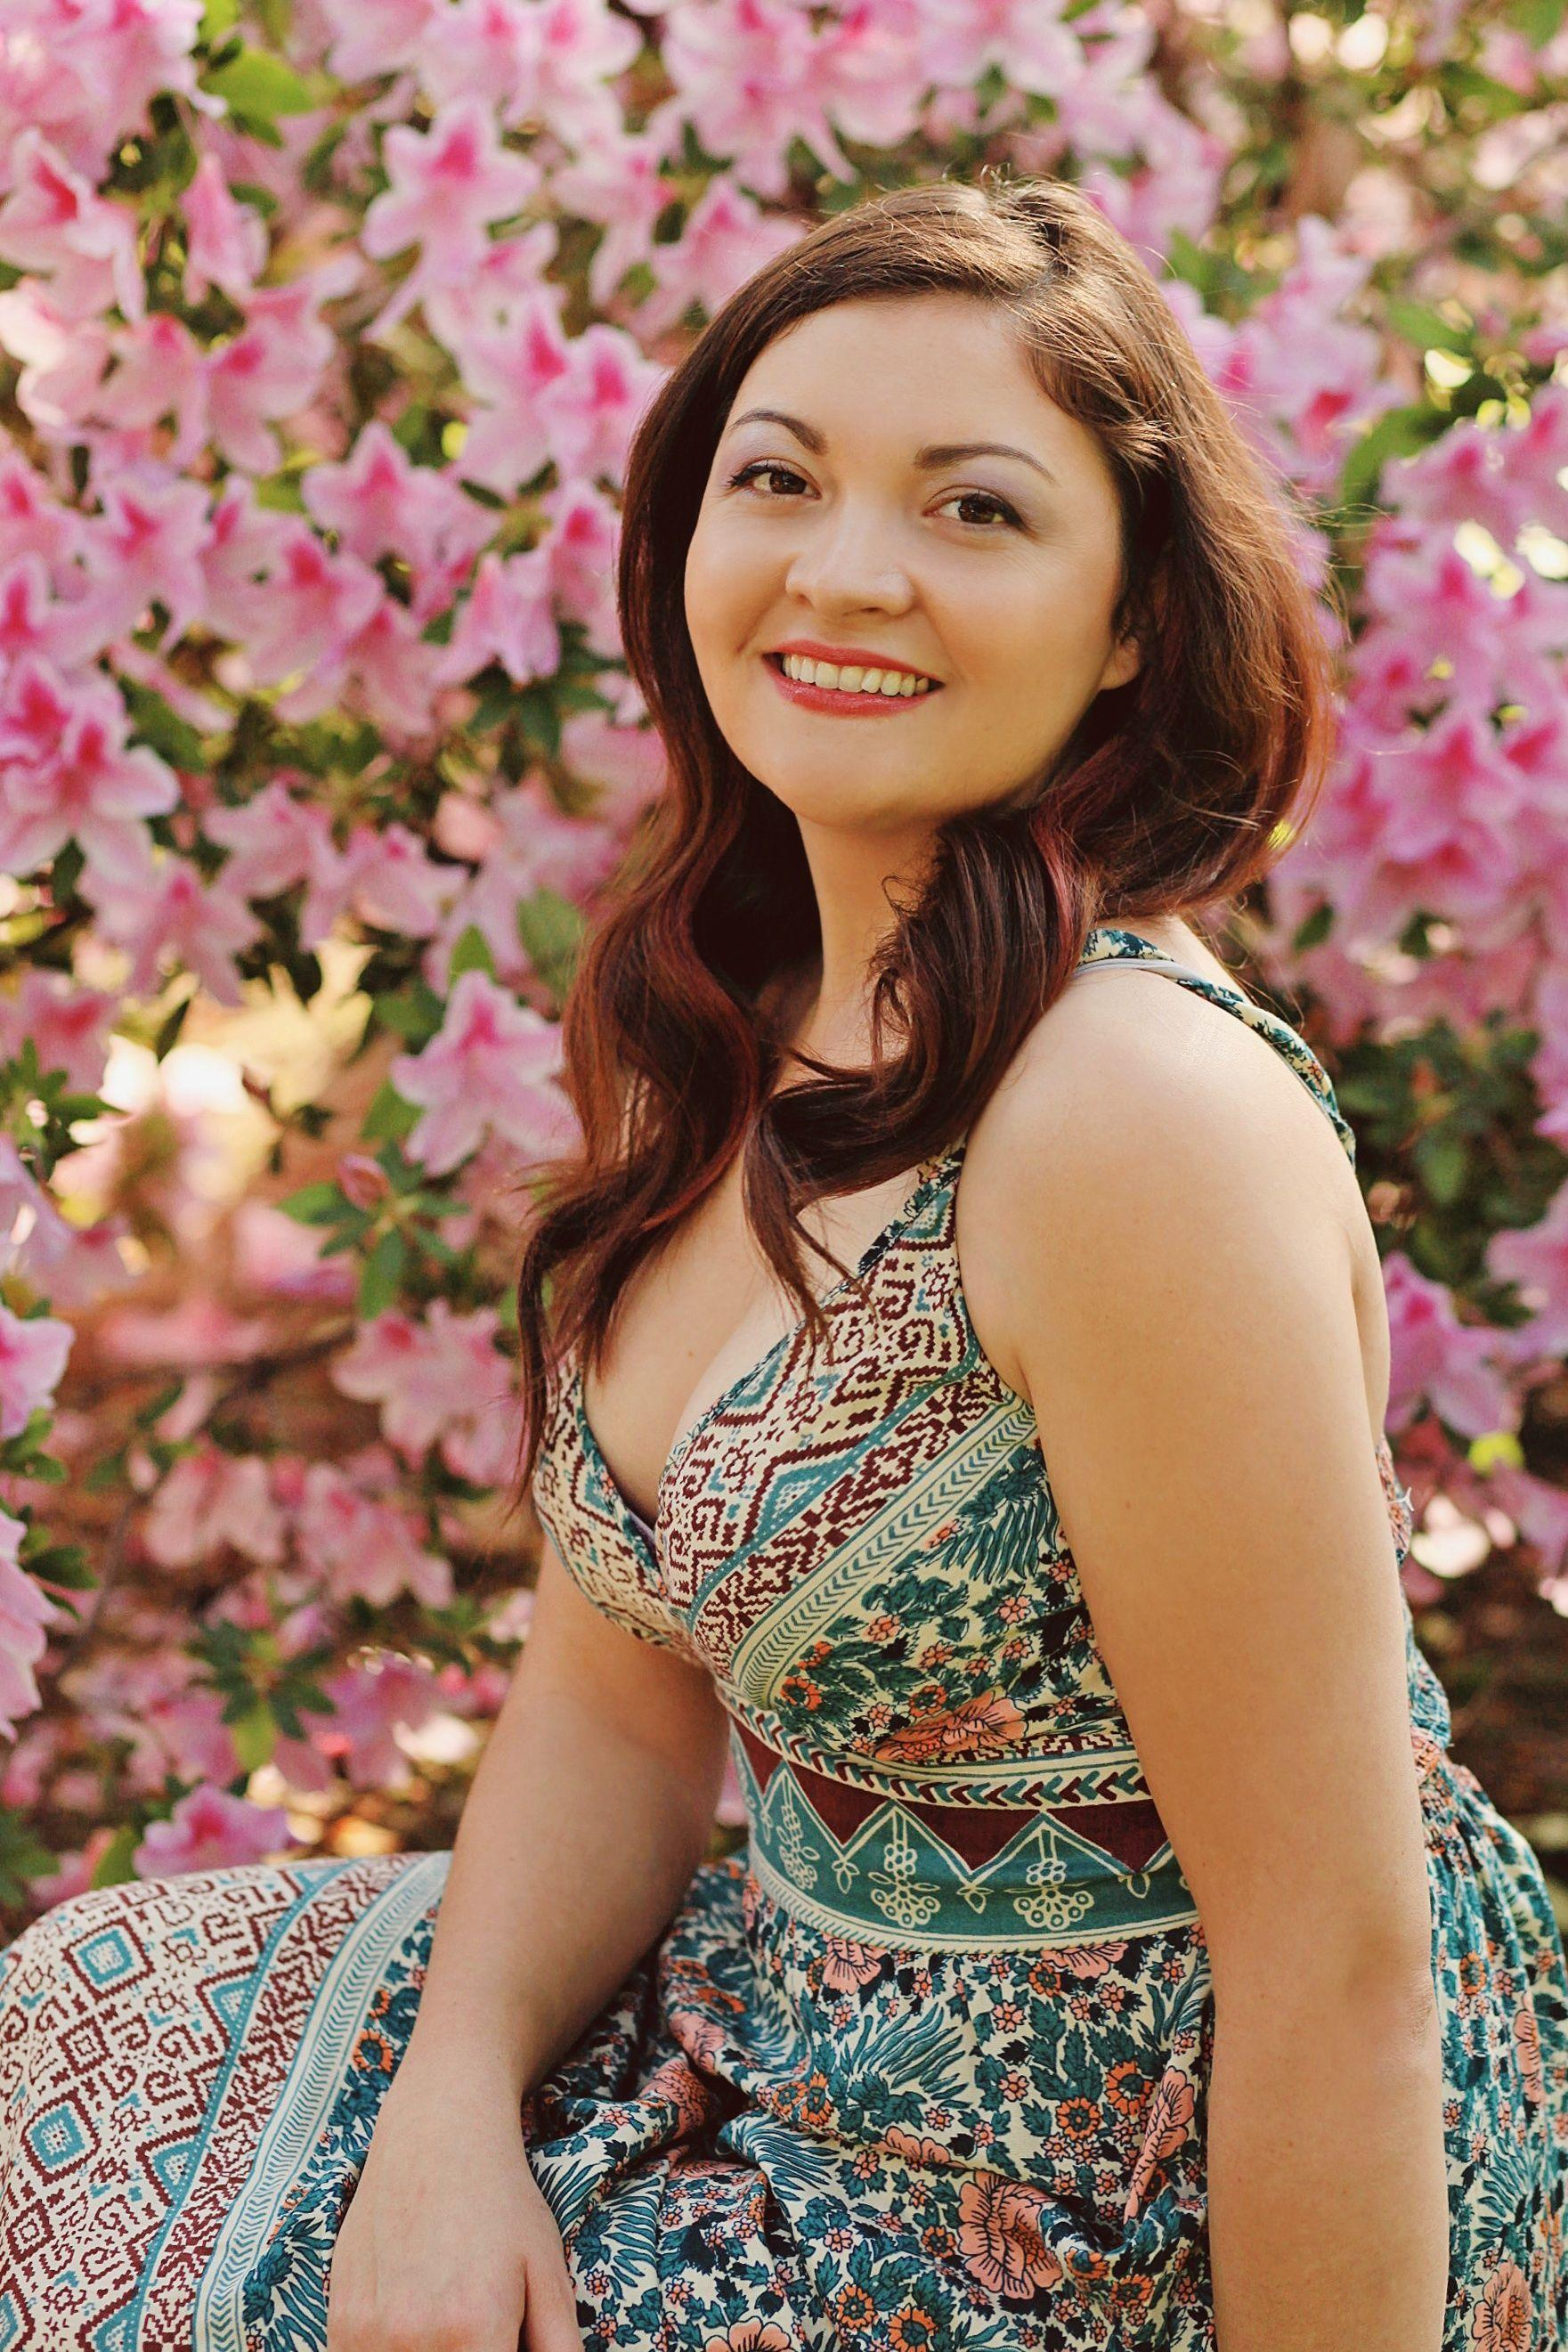 dating claremont ca Meet catholic singles in claremont, new hampshire online & connect in the chat rooms dhu is a 100% free dating site to find single catholics.